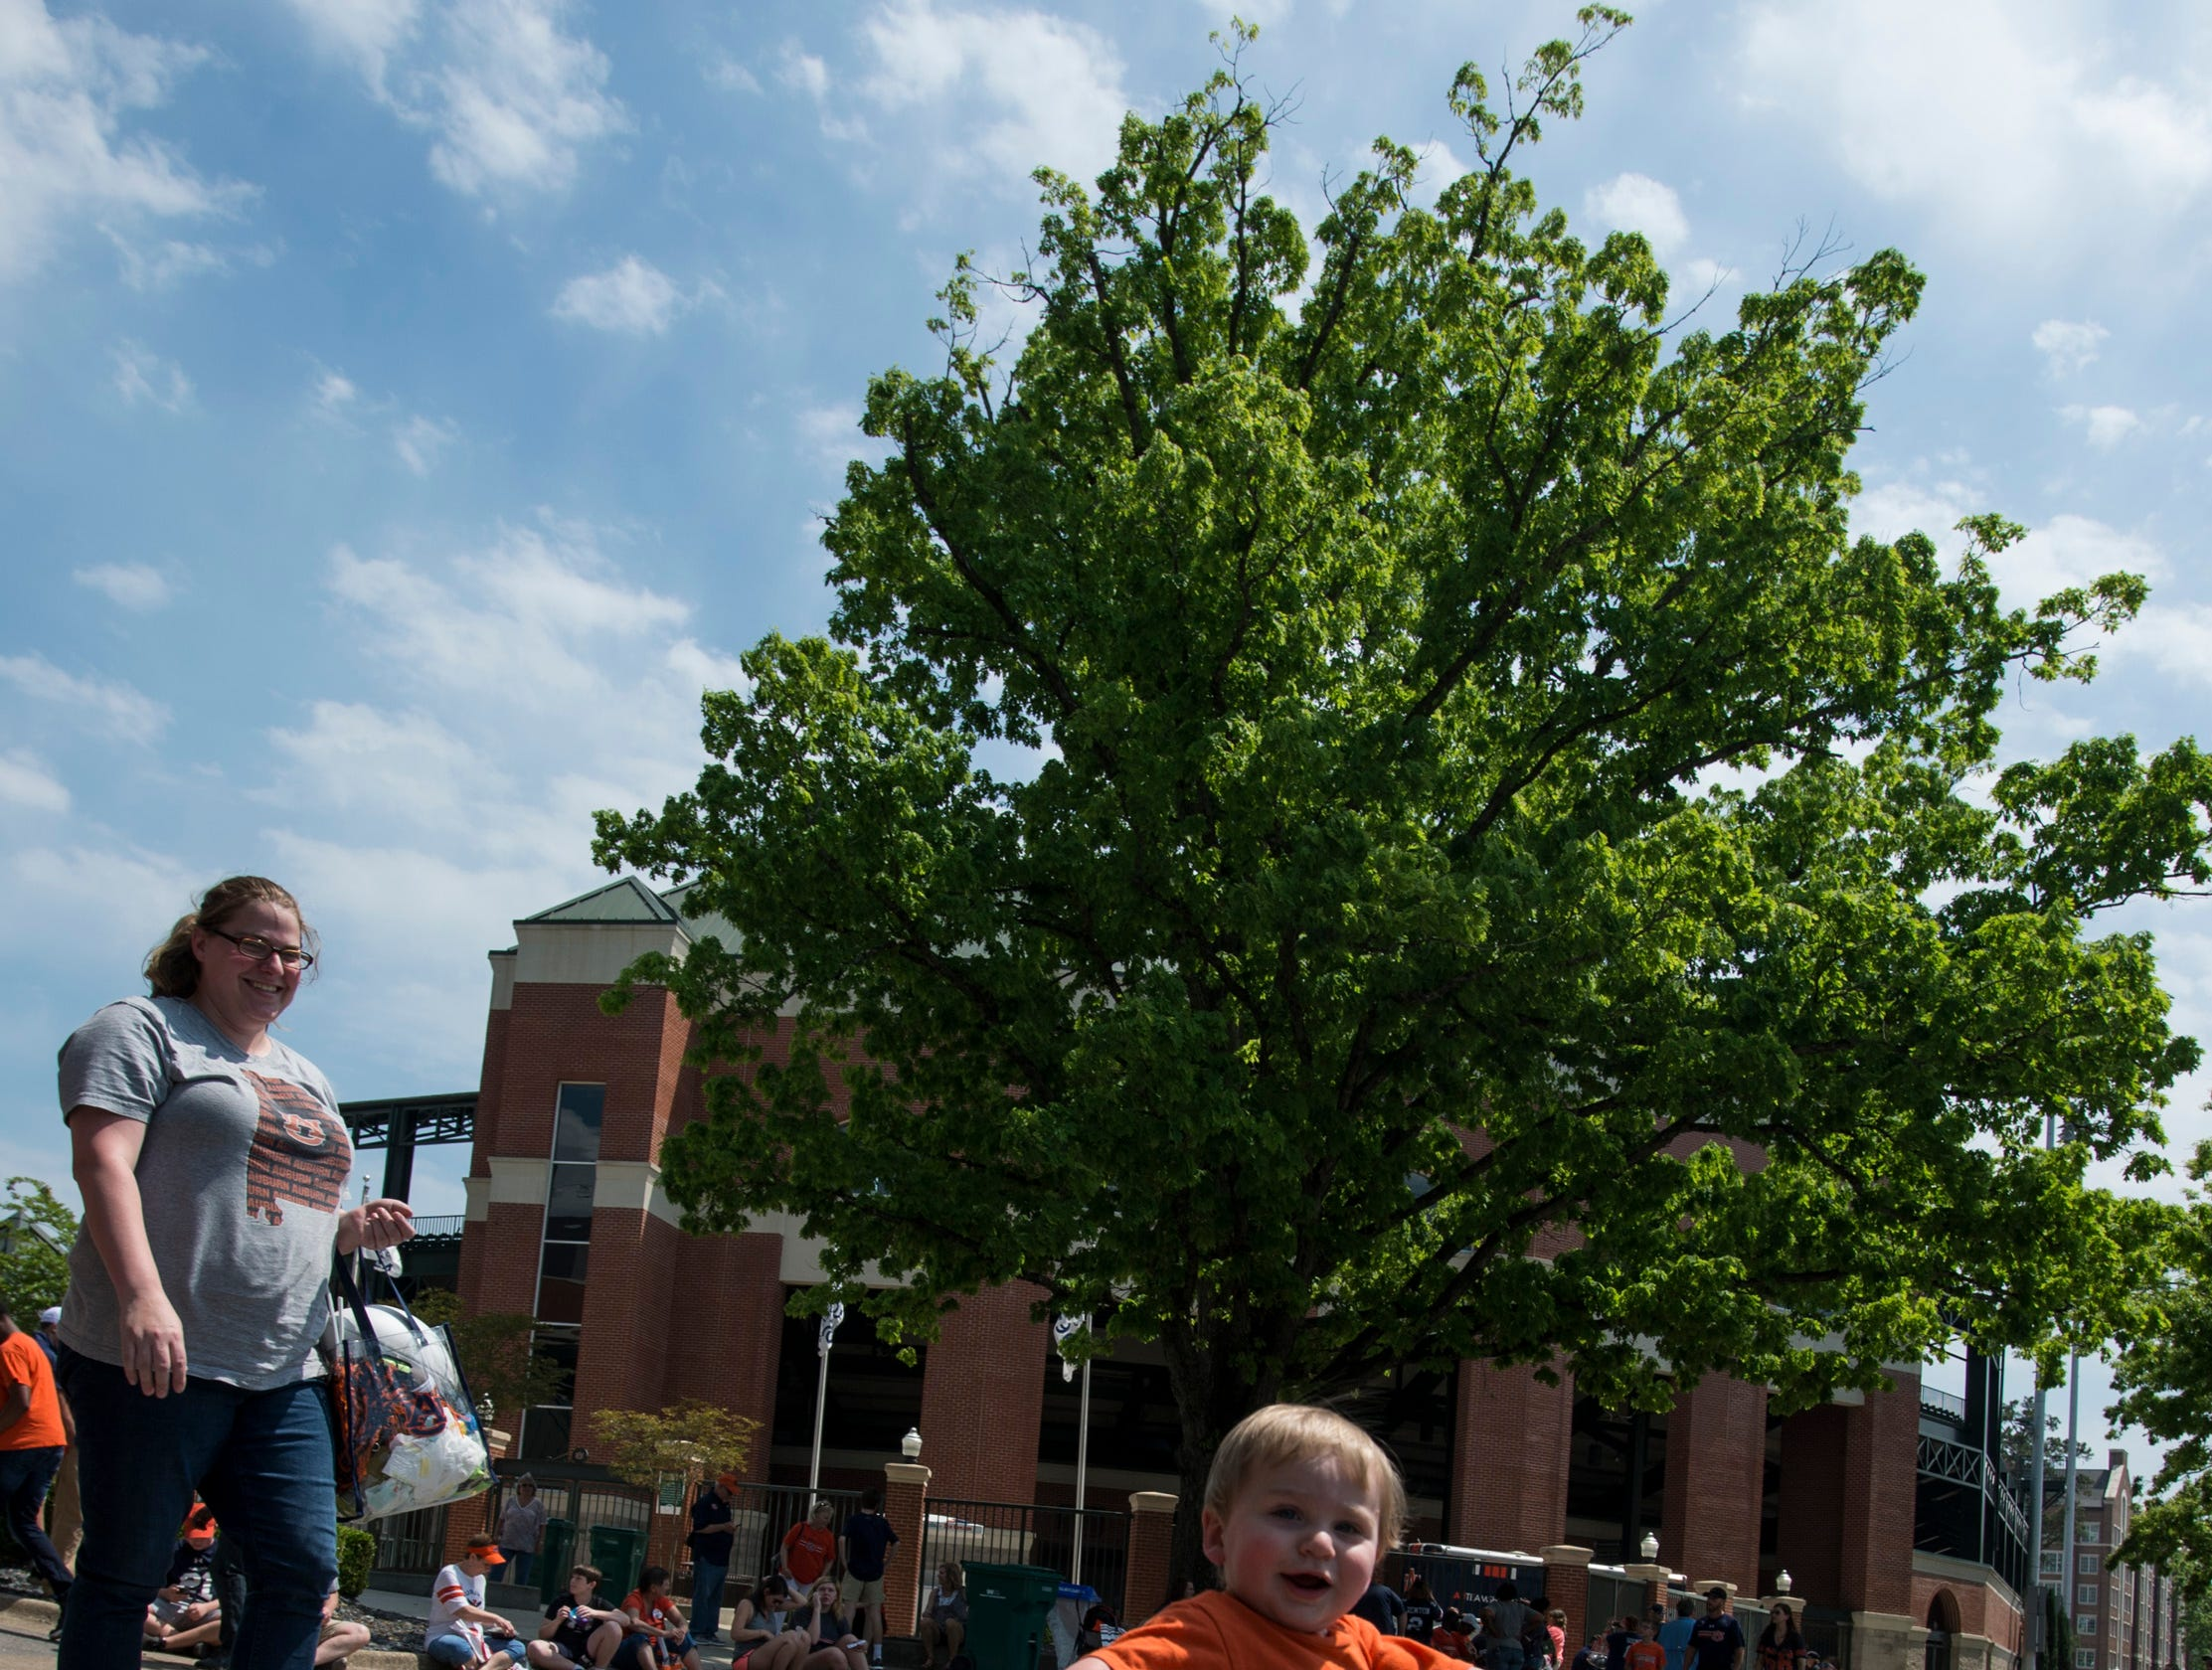 Alexander Hardy, 1, runs across the road with his shaker during the A-Day spring practice gameat Jordan-Hare Stadium in Auburn, Ala., on Saturday, April 13, 2019.